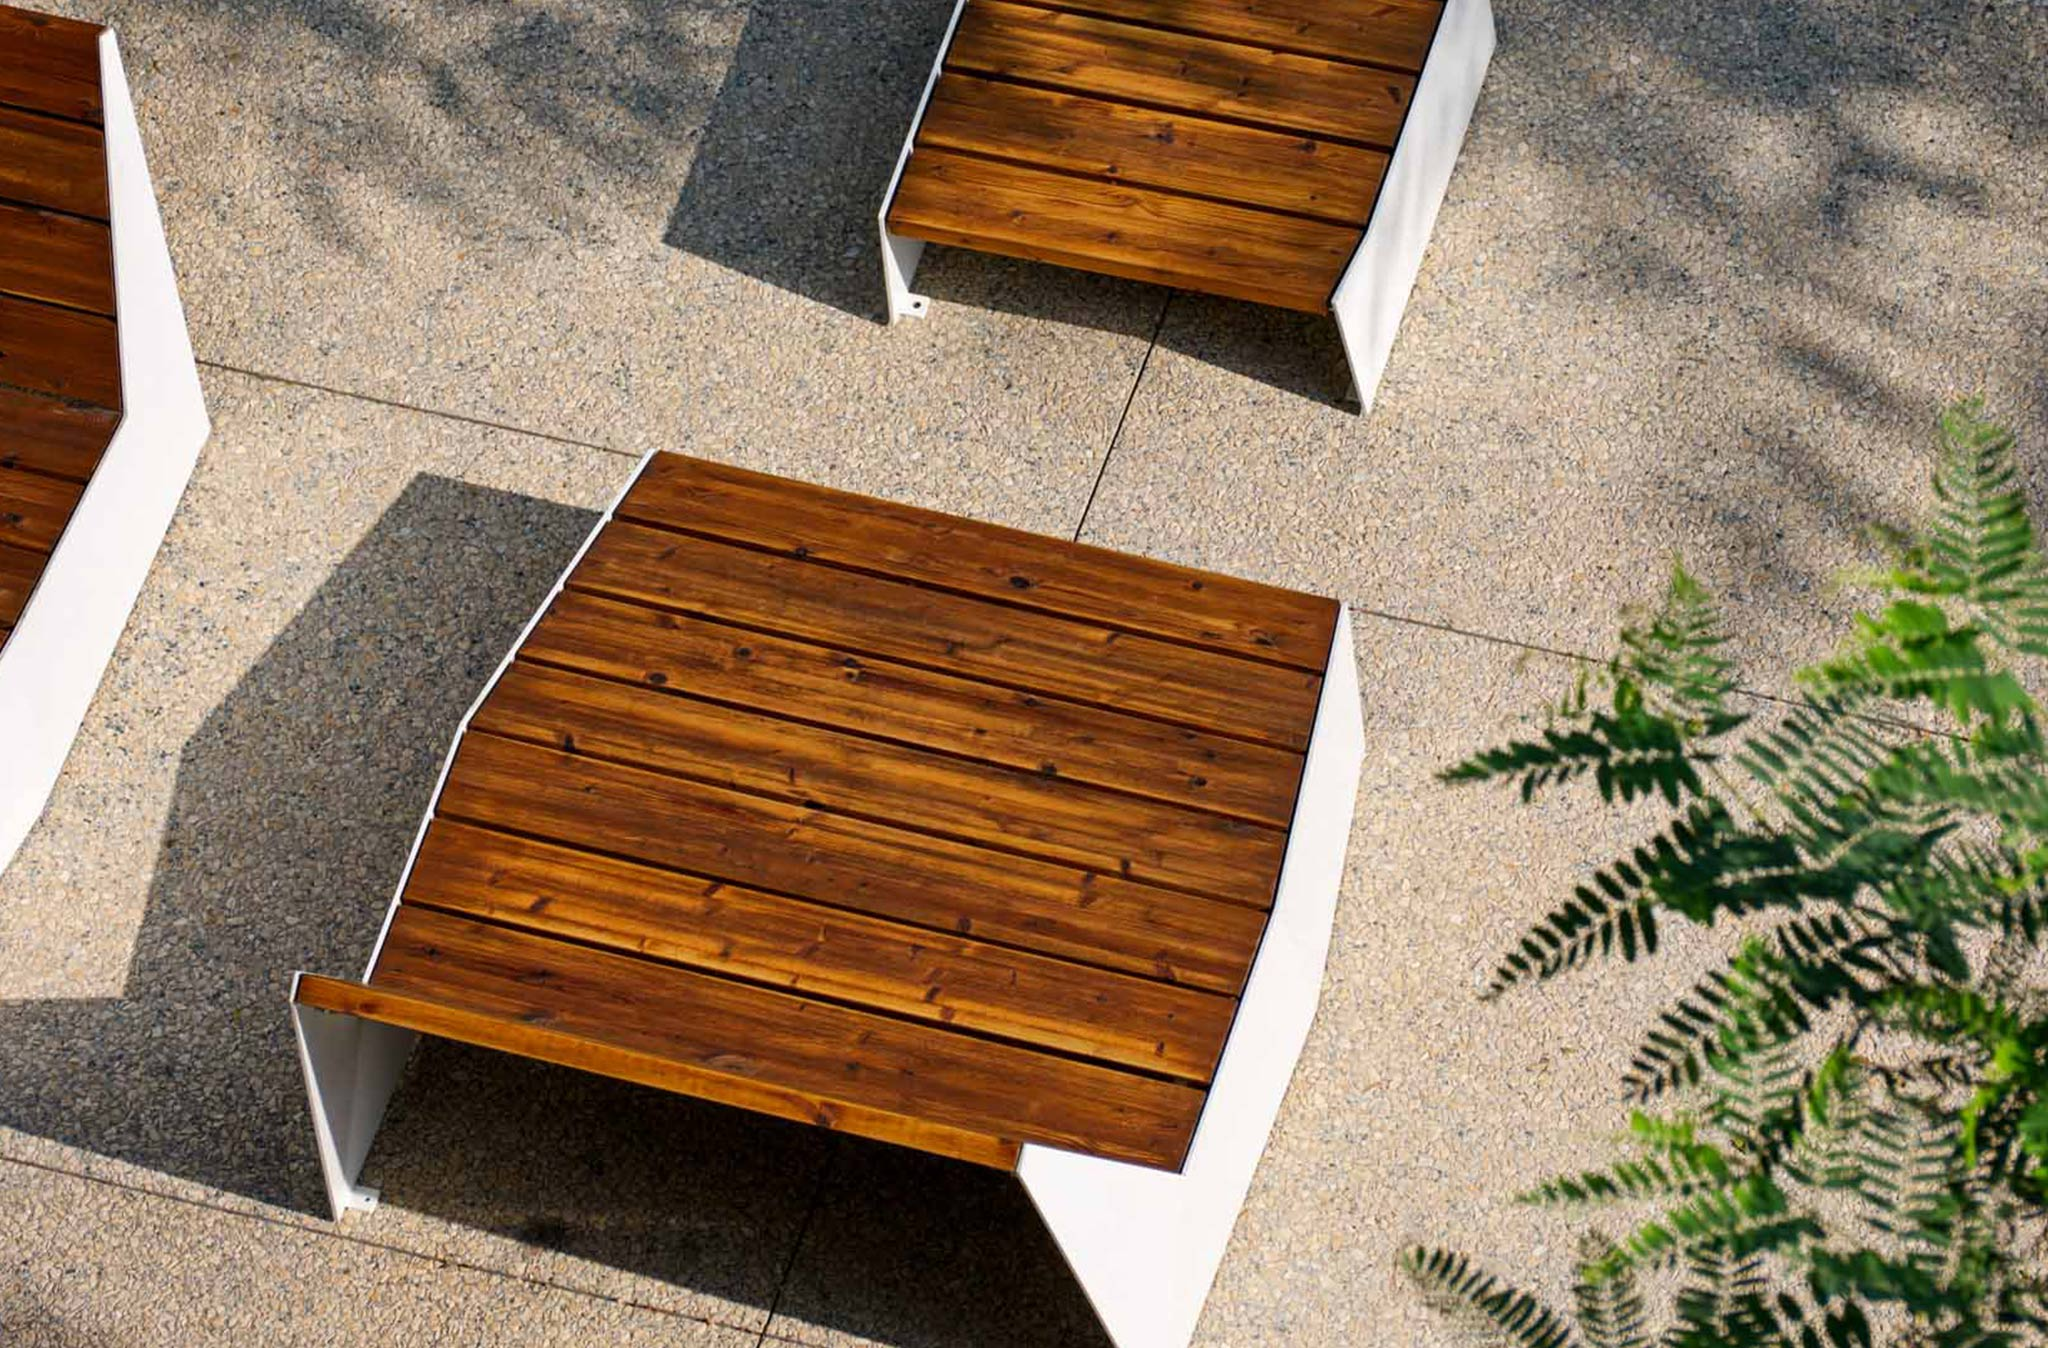 aerial close up of wooden furniture with white detailing